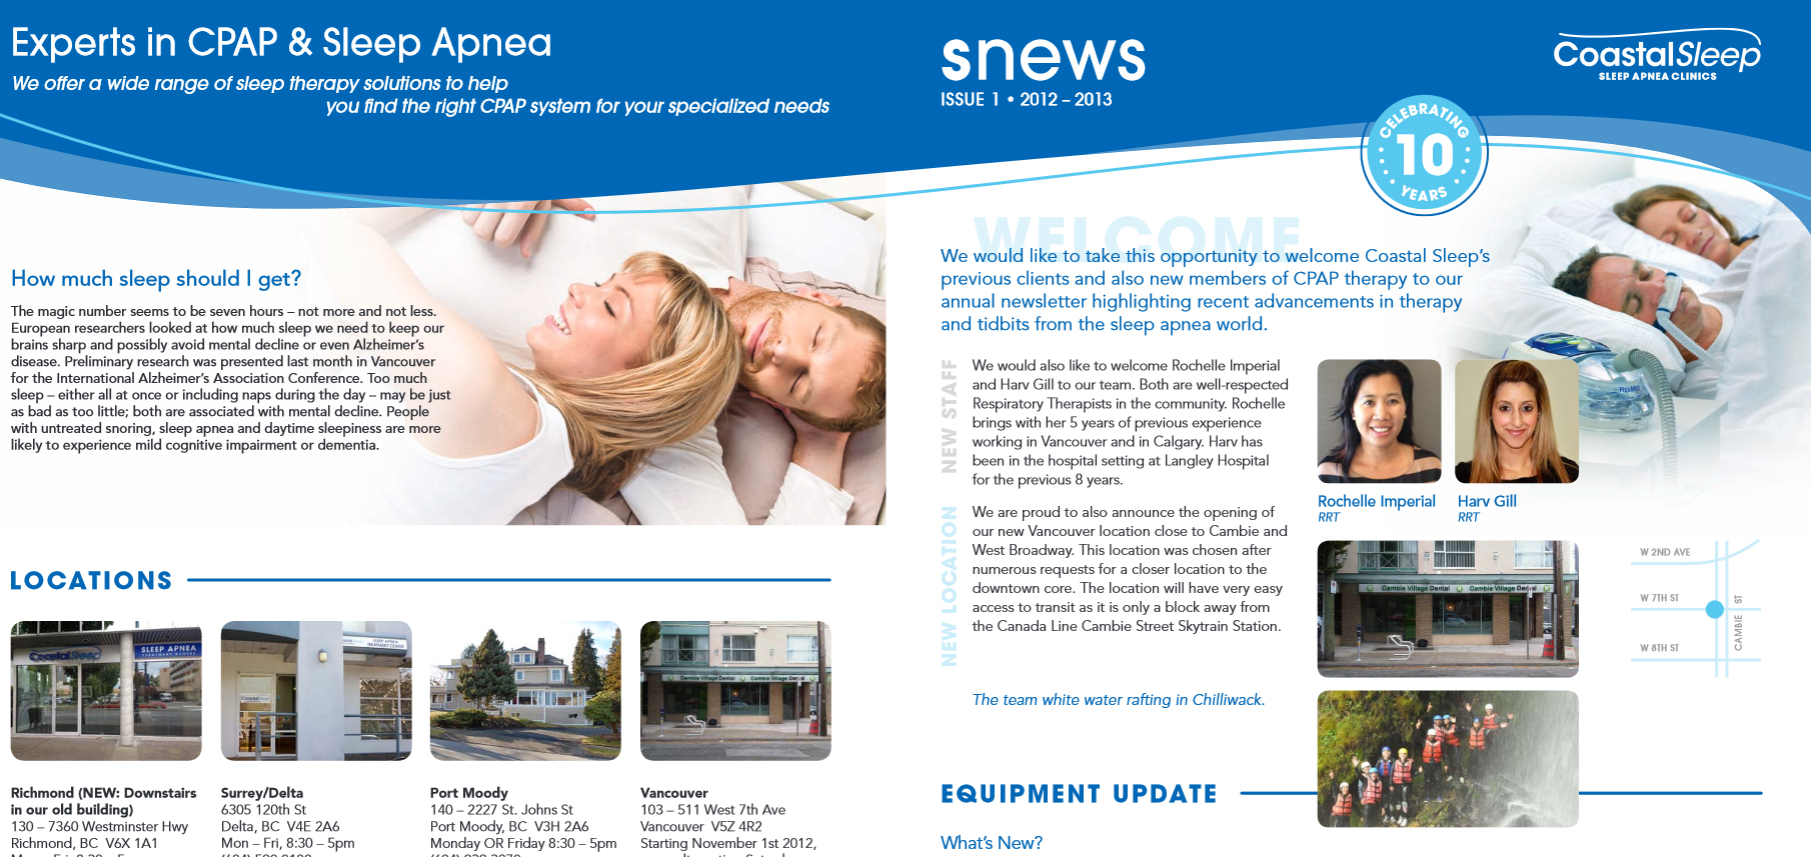 """SNEWS"" 2012-2013 Newsletter"